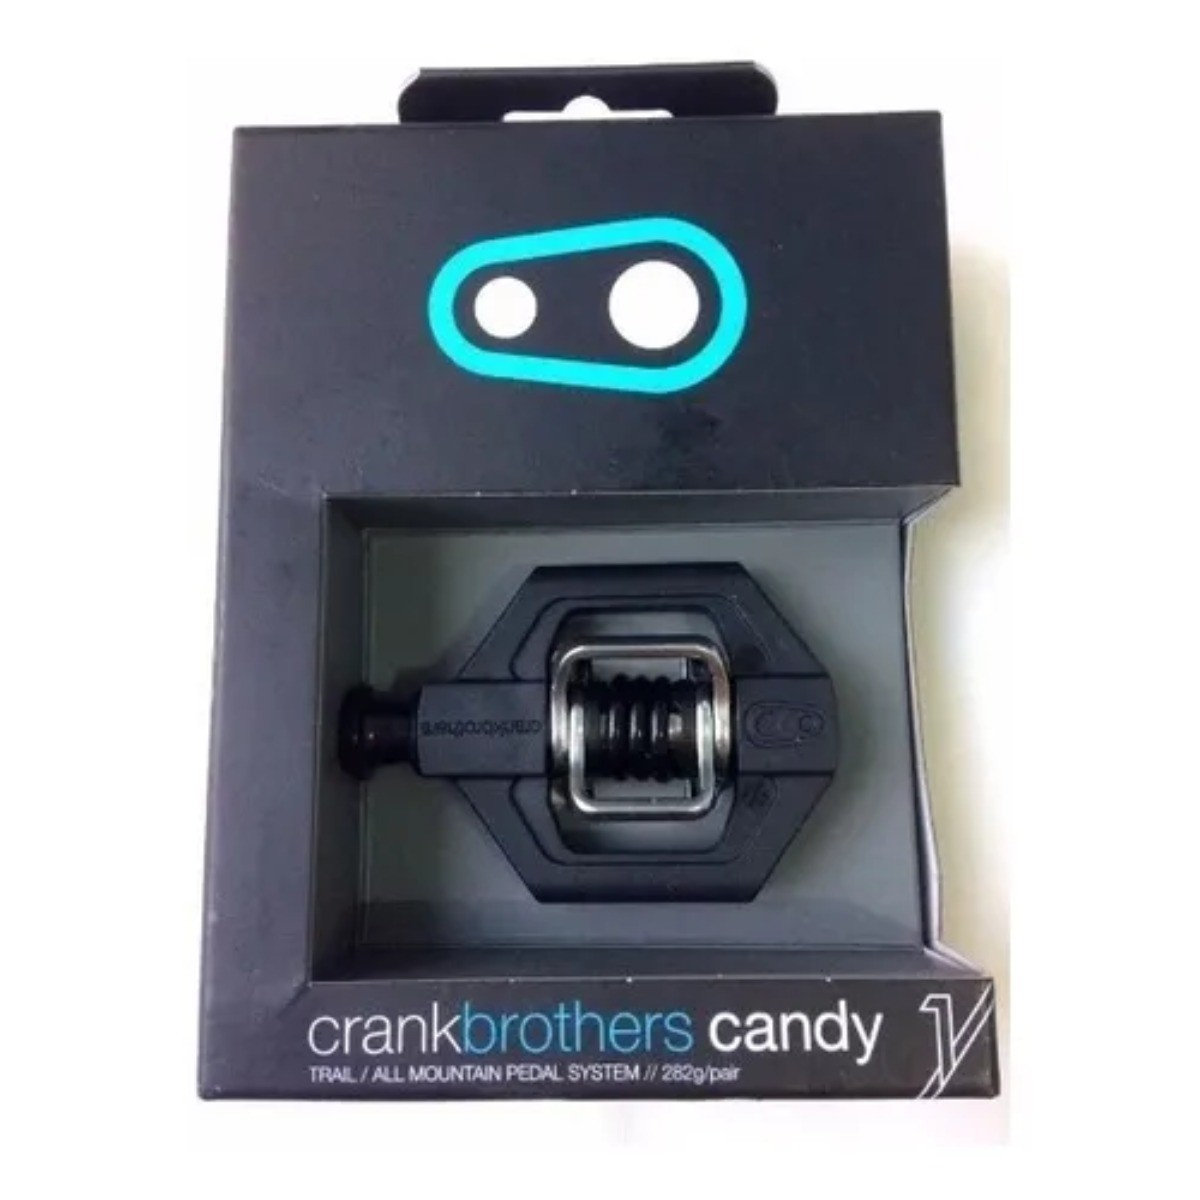 Sapatilha Giro Cylinder Com Pedal Crankbrothers Candy Bike